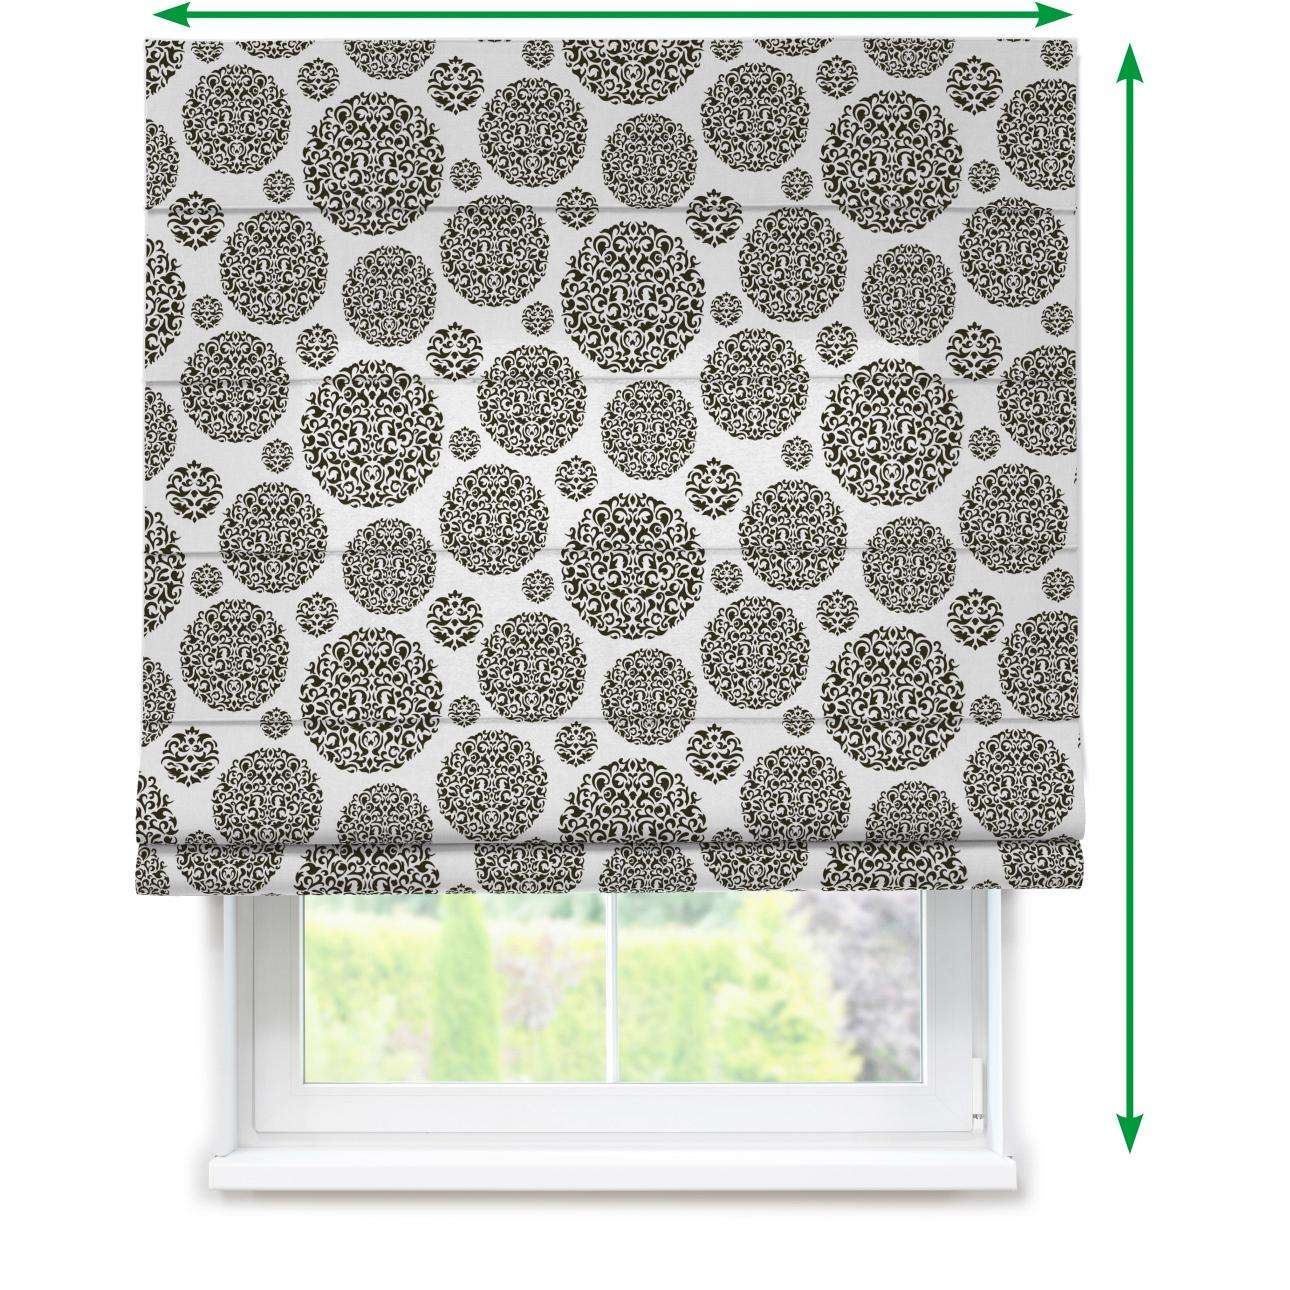 Lined roman blind in collection Comic Book & Geo Prints, fabric: 135-19